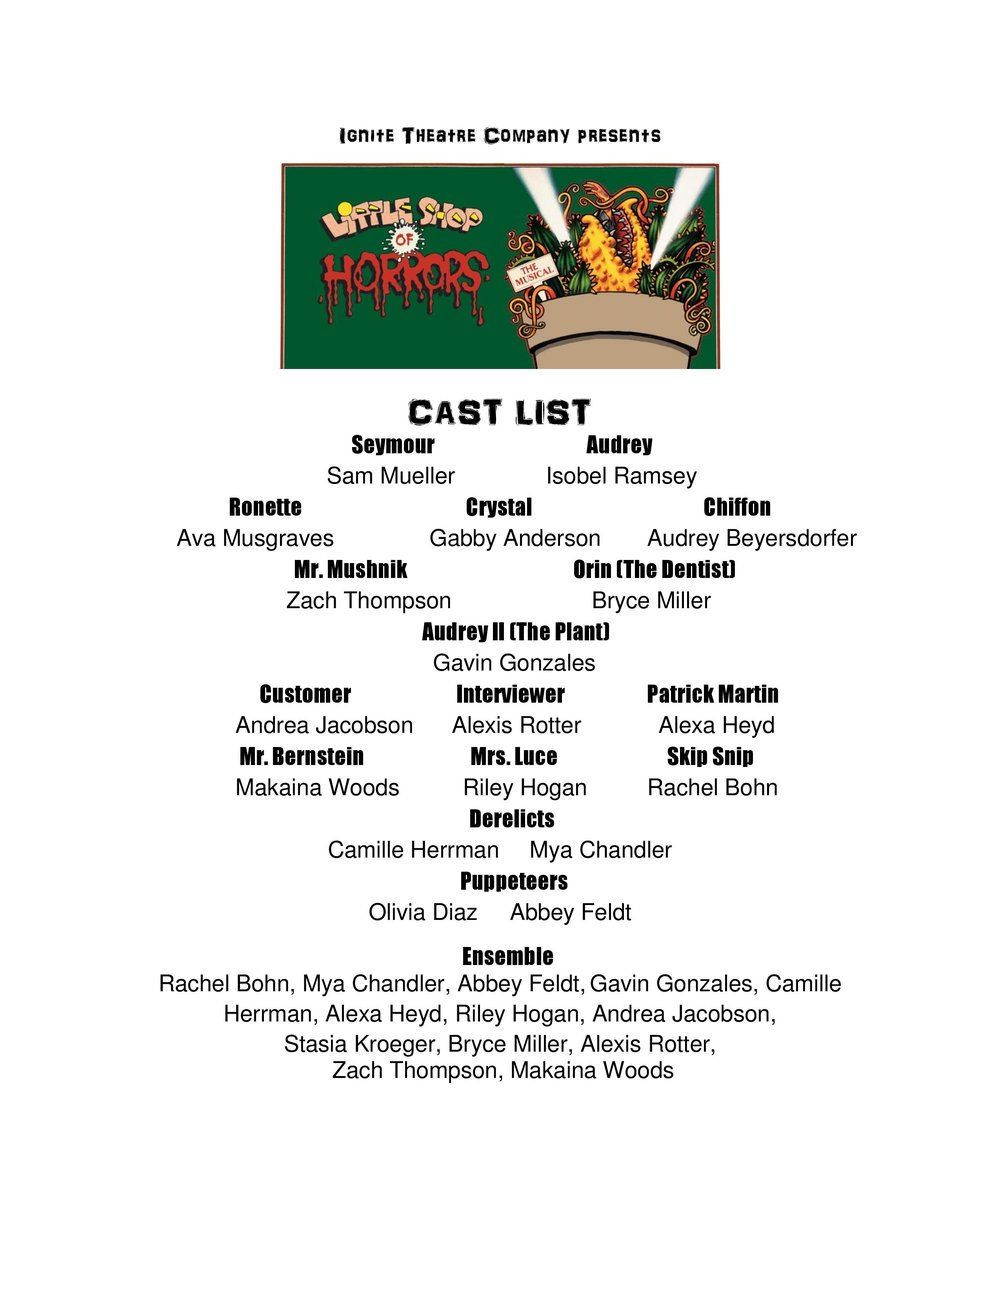 Little Shop of Horrors at Southampton Church will run July 27-30 Tickets available at: http://www.brownpapertickets.com/event/2791426